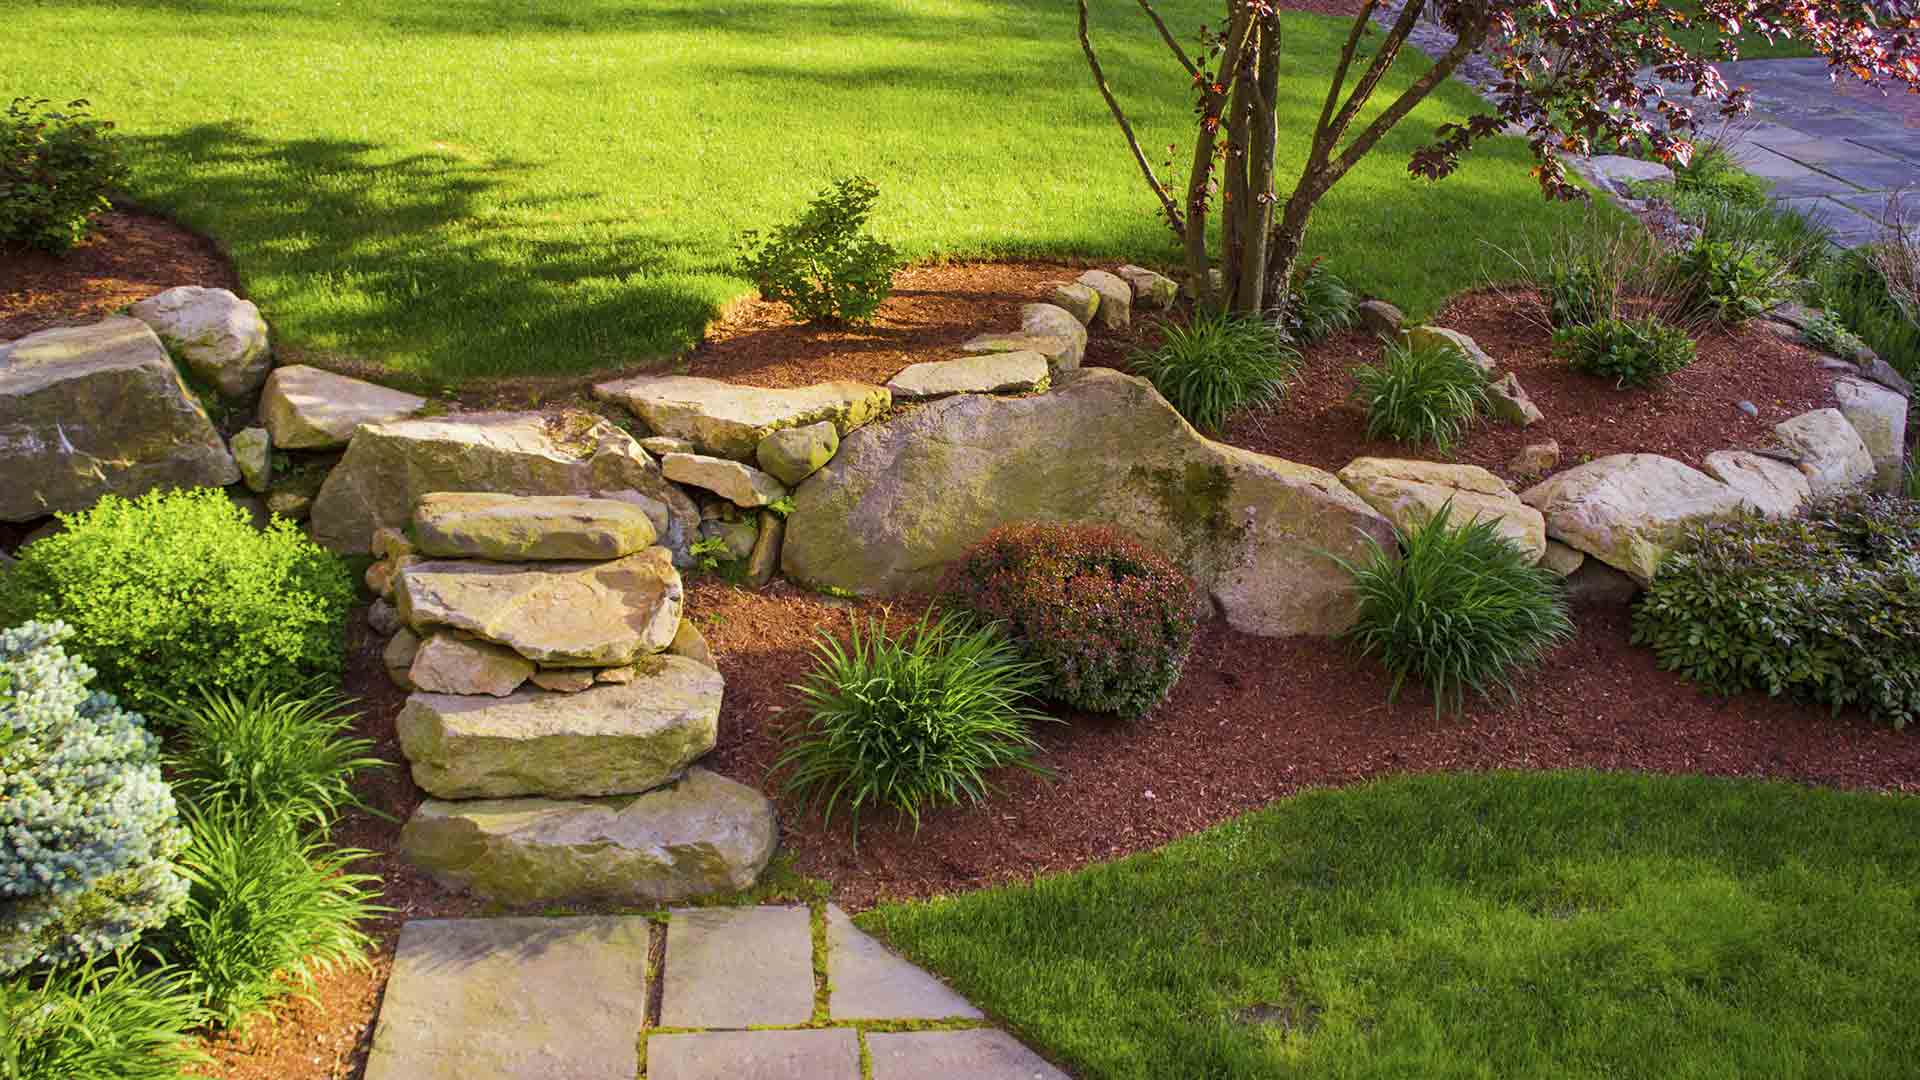 beautiful landscaped garden